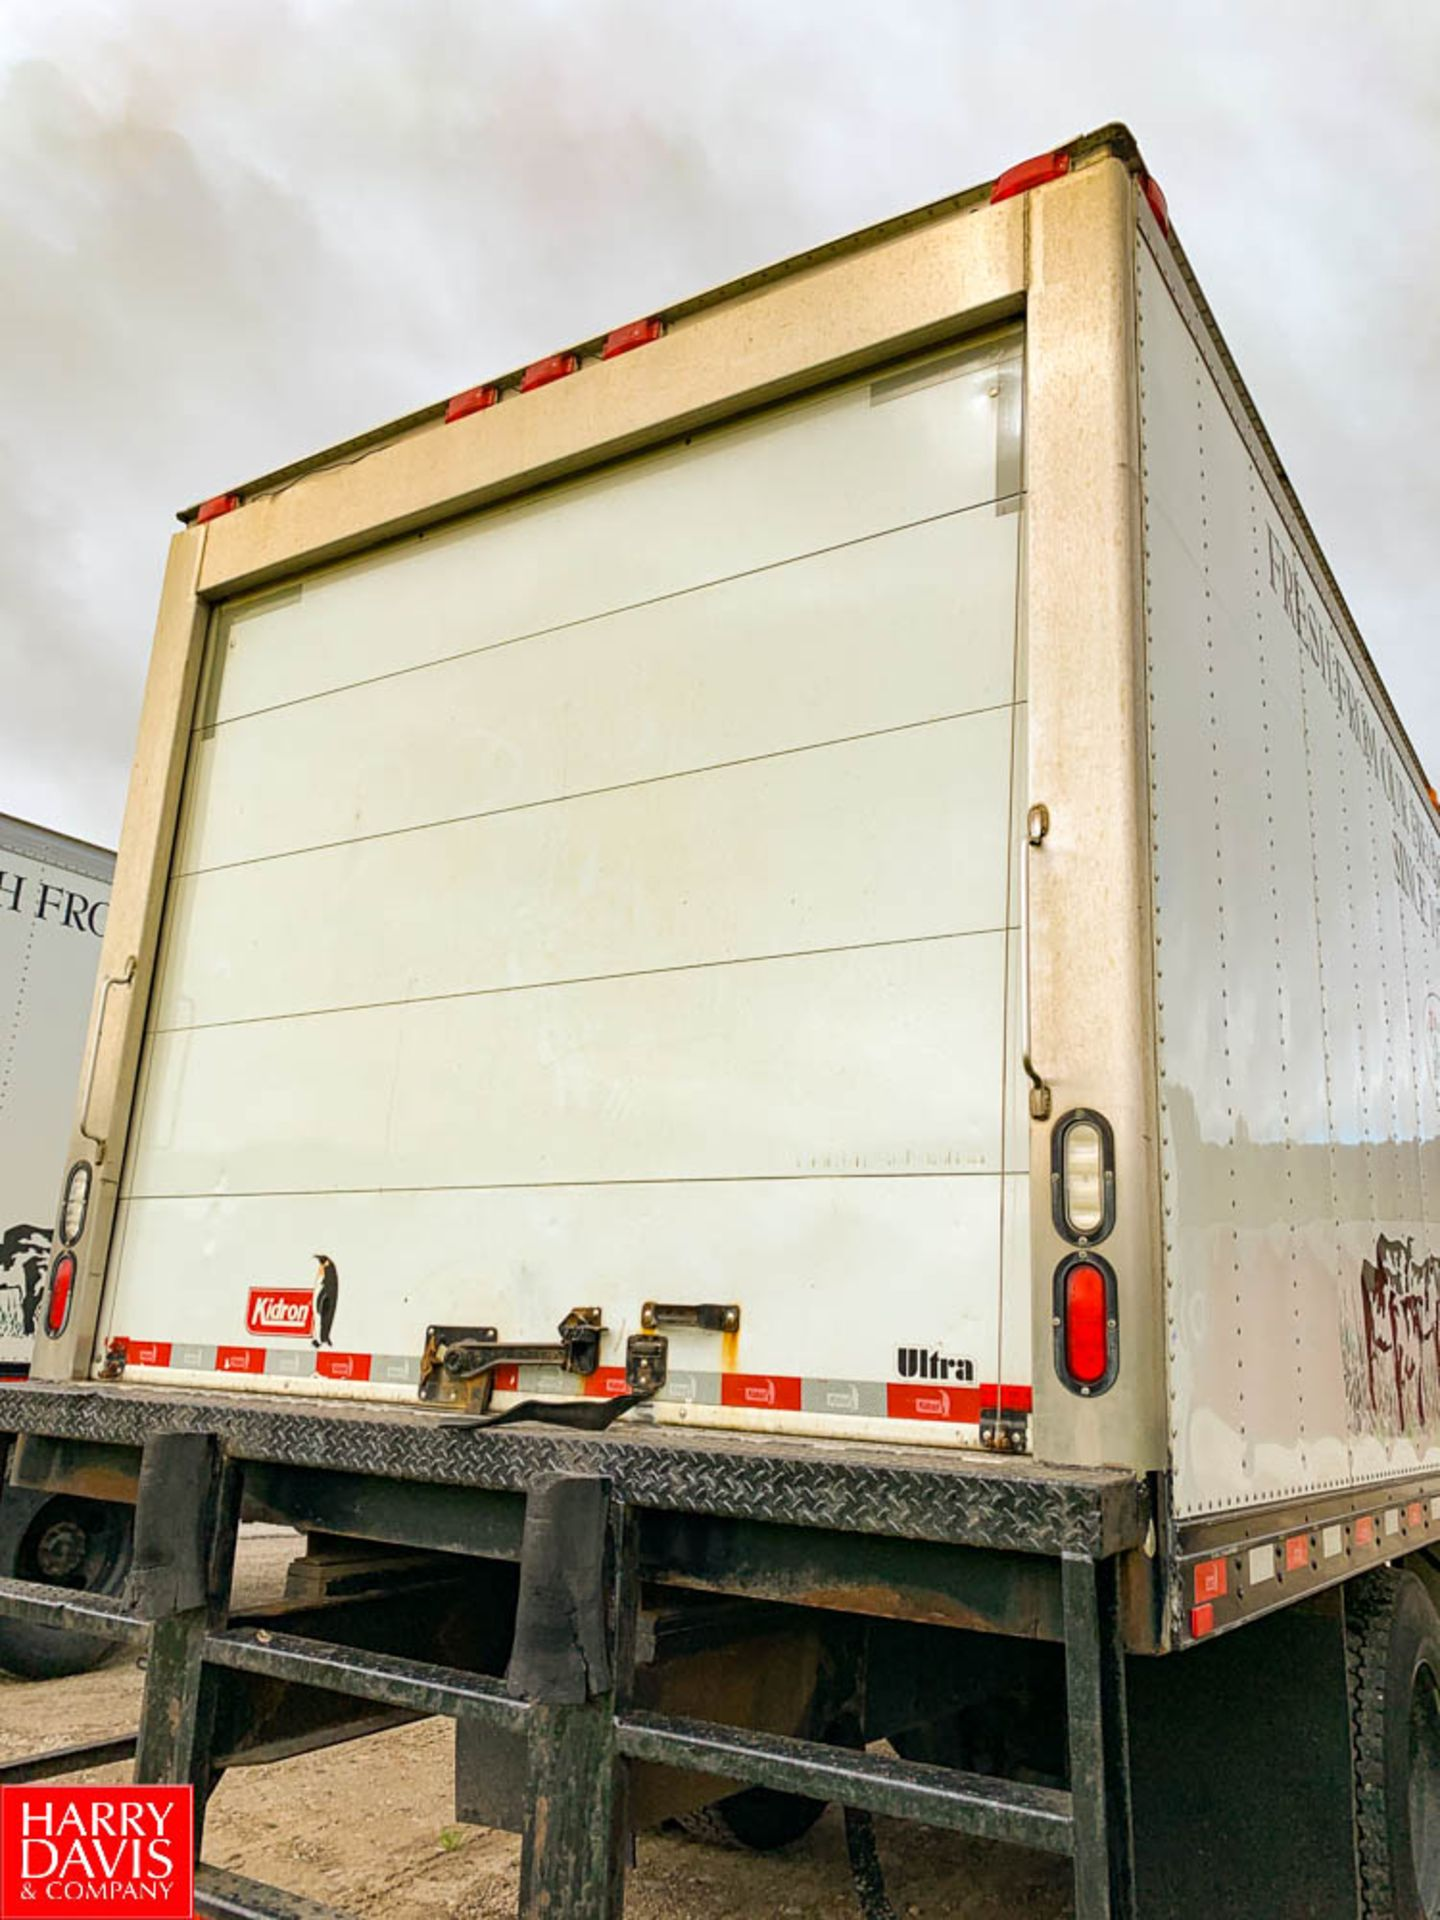 2017 Freightliner 20' Refrigerated Delivery Truck Model: M2106, 33,000 GVWR, Cummins IBS 6.7 280 - Image 3 of 8